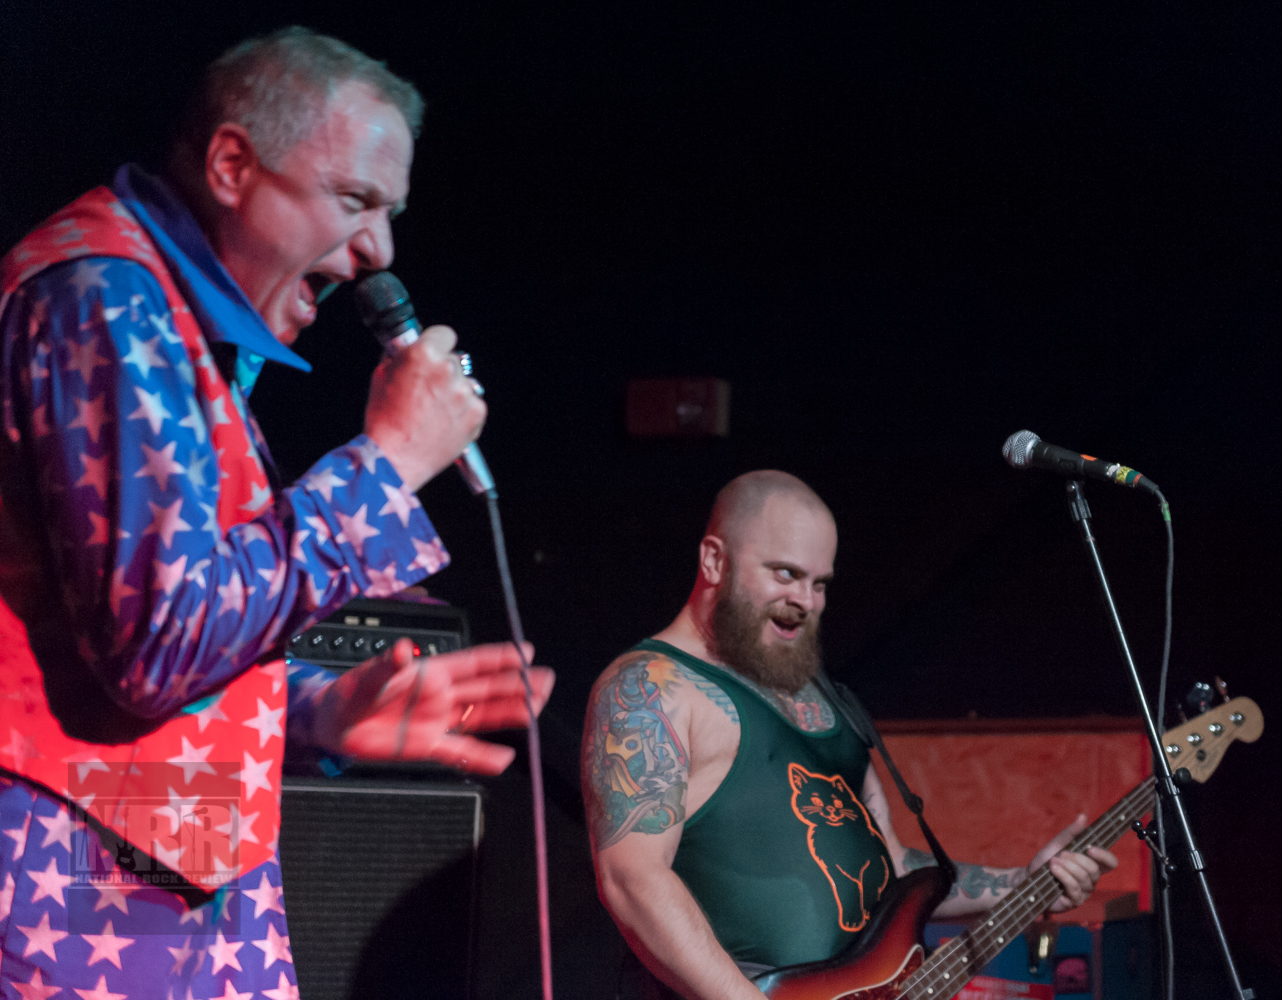 MeatMen-Branx-Portland_OR-20140605-WmRiddle-023.jpg